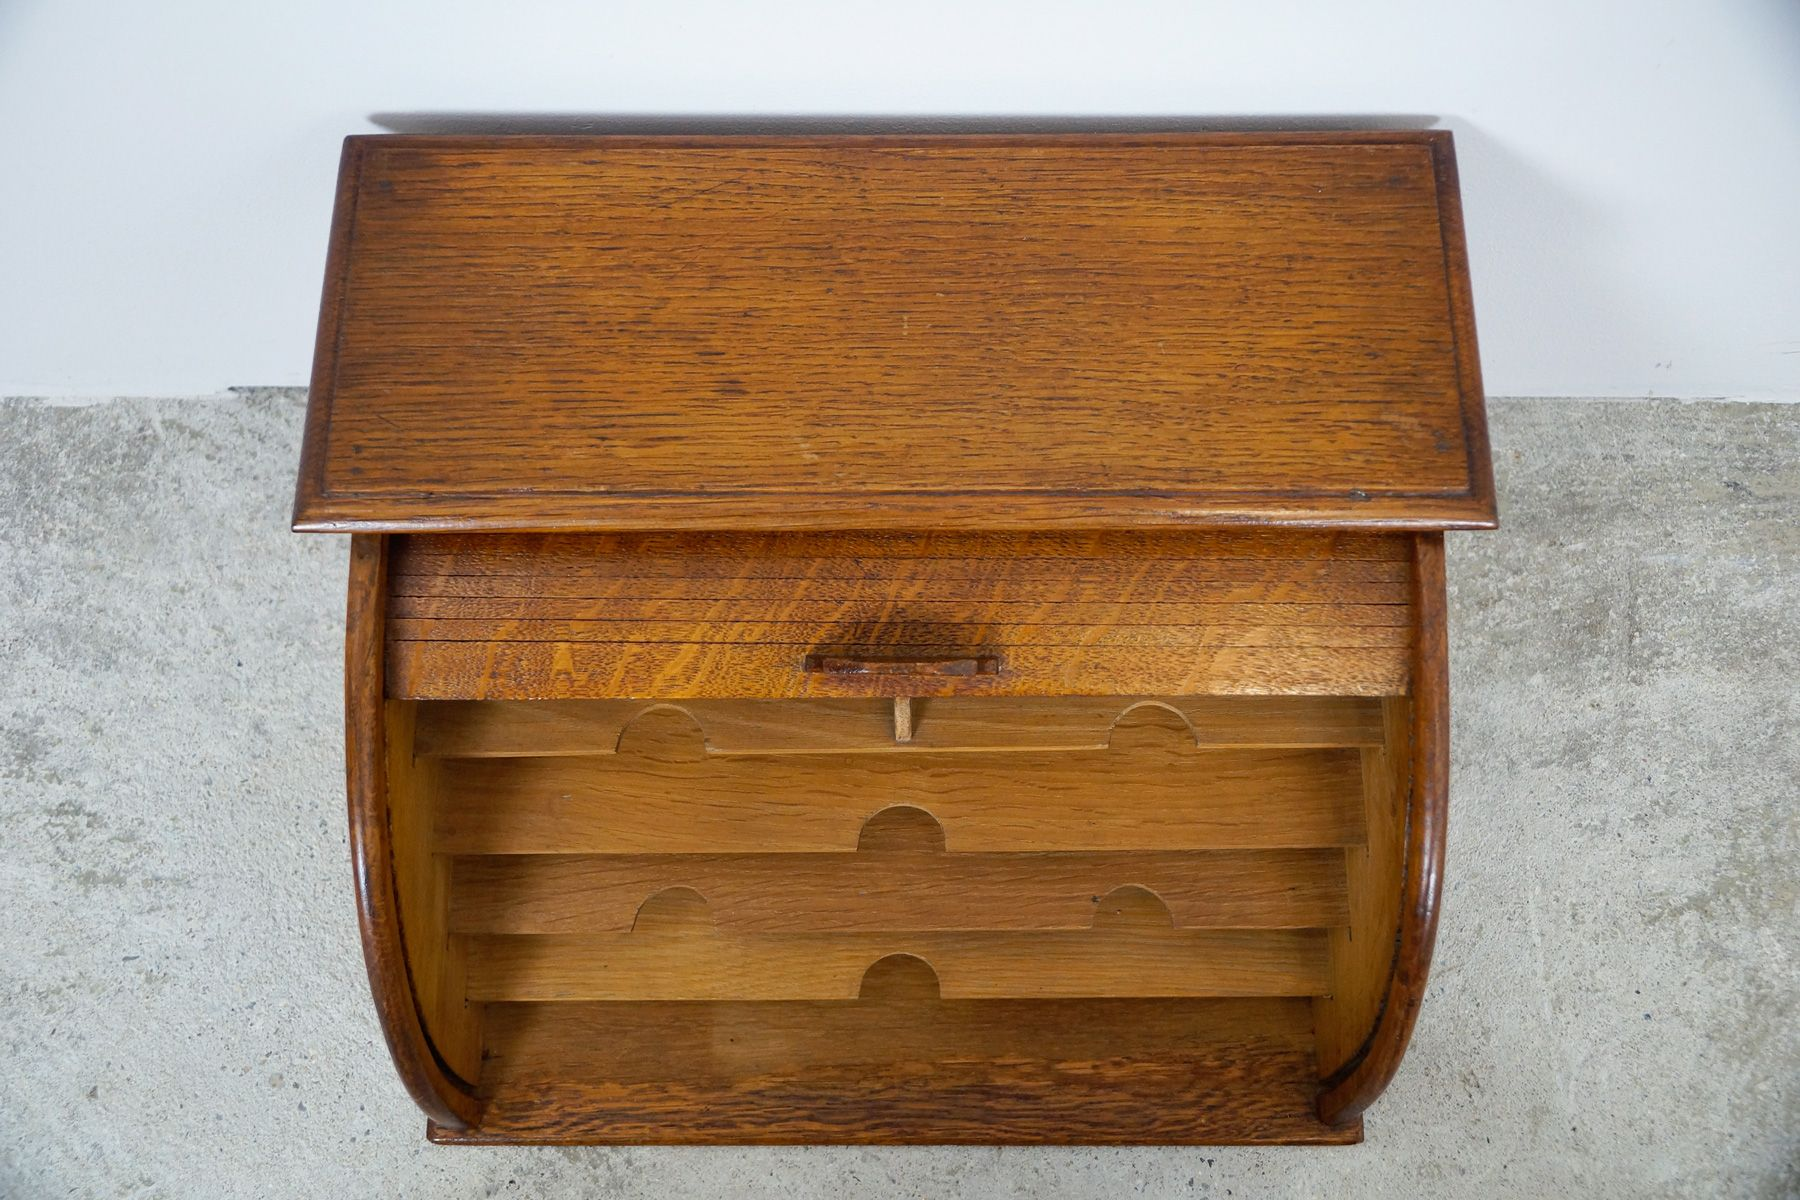 Small English Desk Top Document Cabinet, 1910s for sale at Pamono